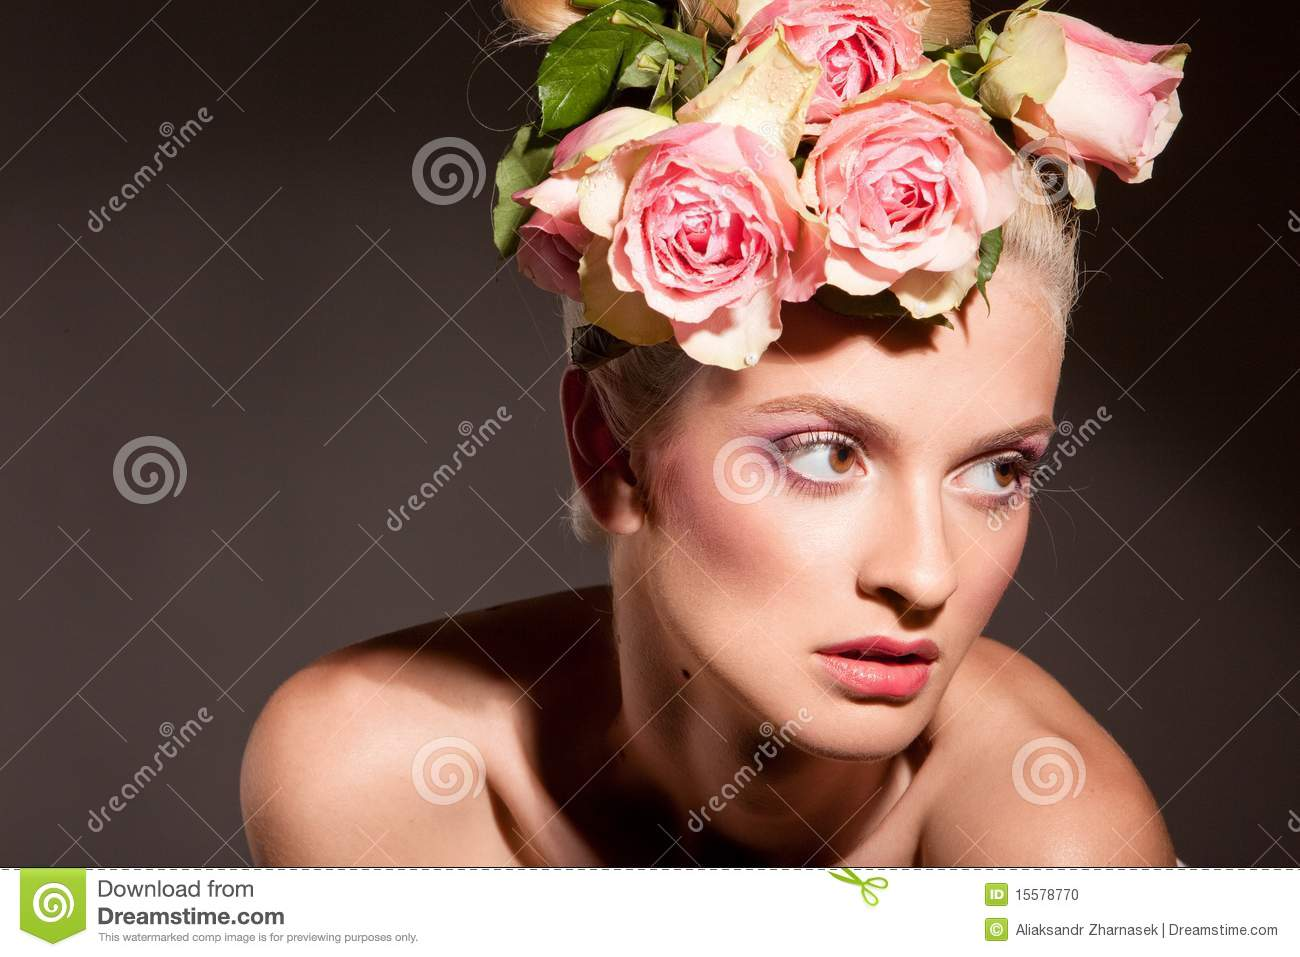 Beautiful blonde with a wreath of flowers